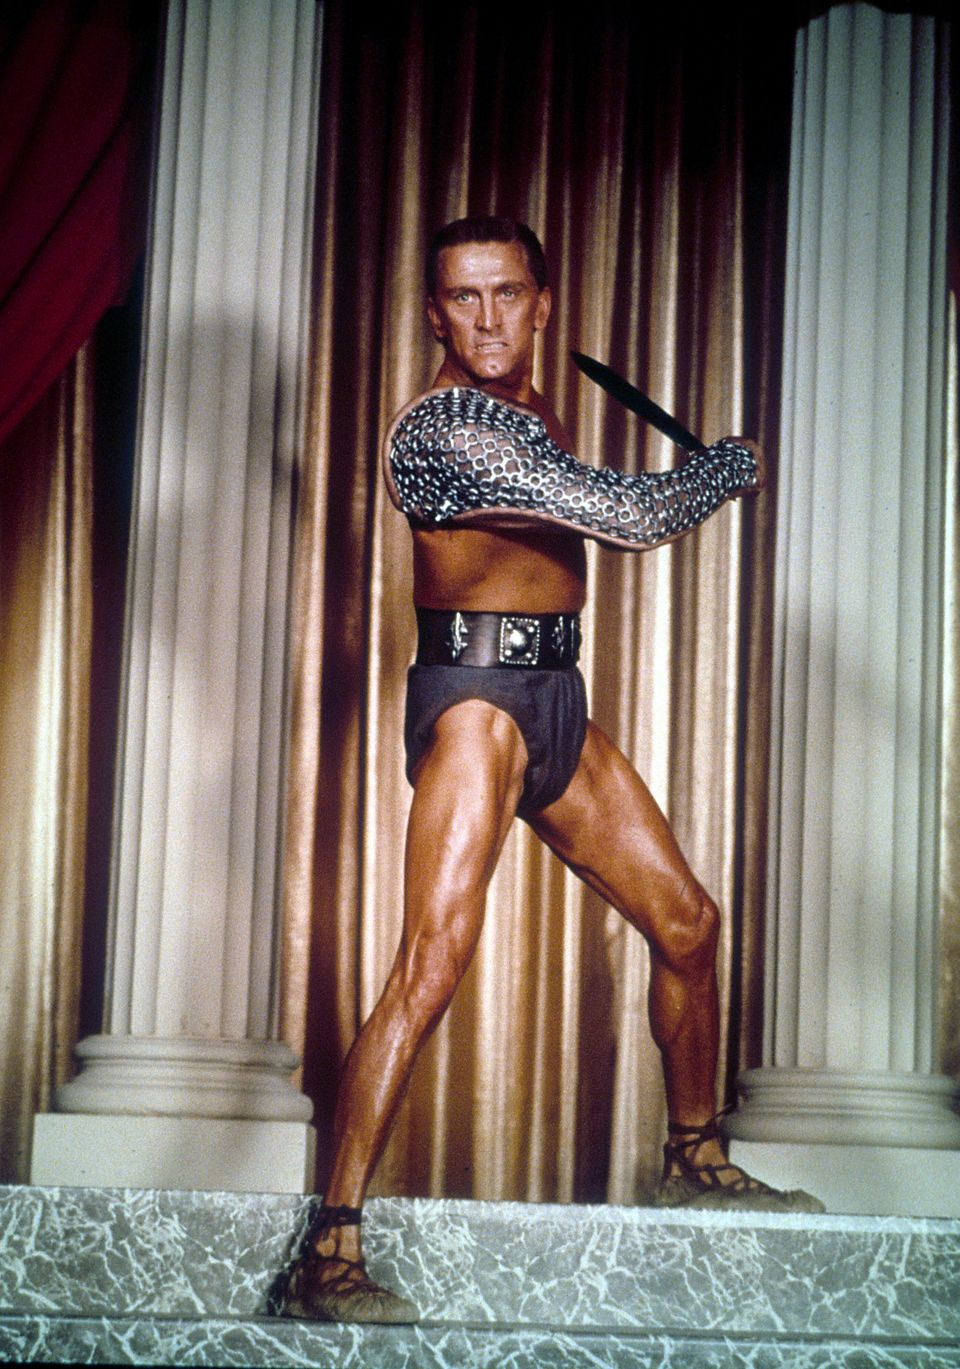 Kirk Douglas the slave Spartacus, standing in between columns holding a sword in a scene from the film 'Spartacus', 1960. (Ph